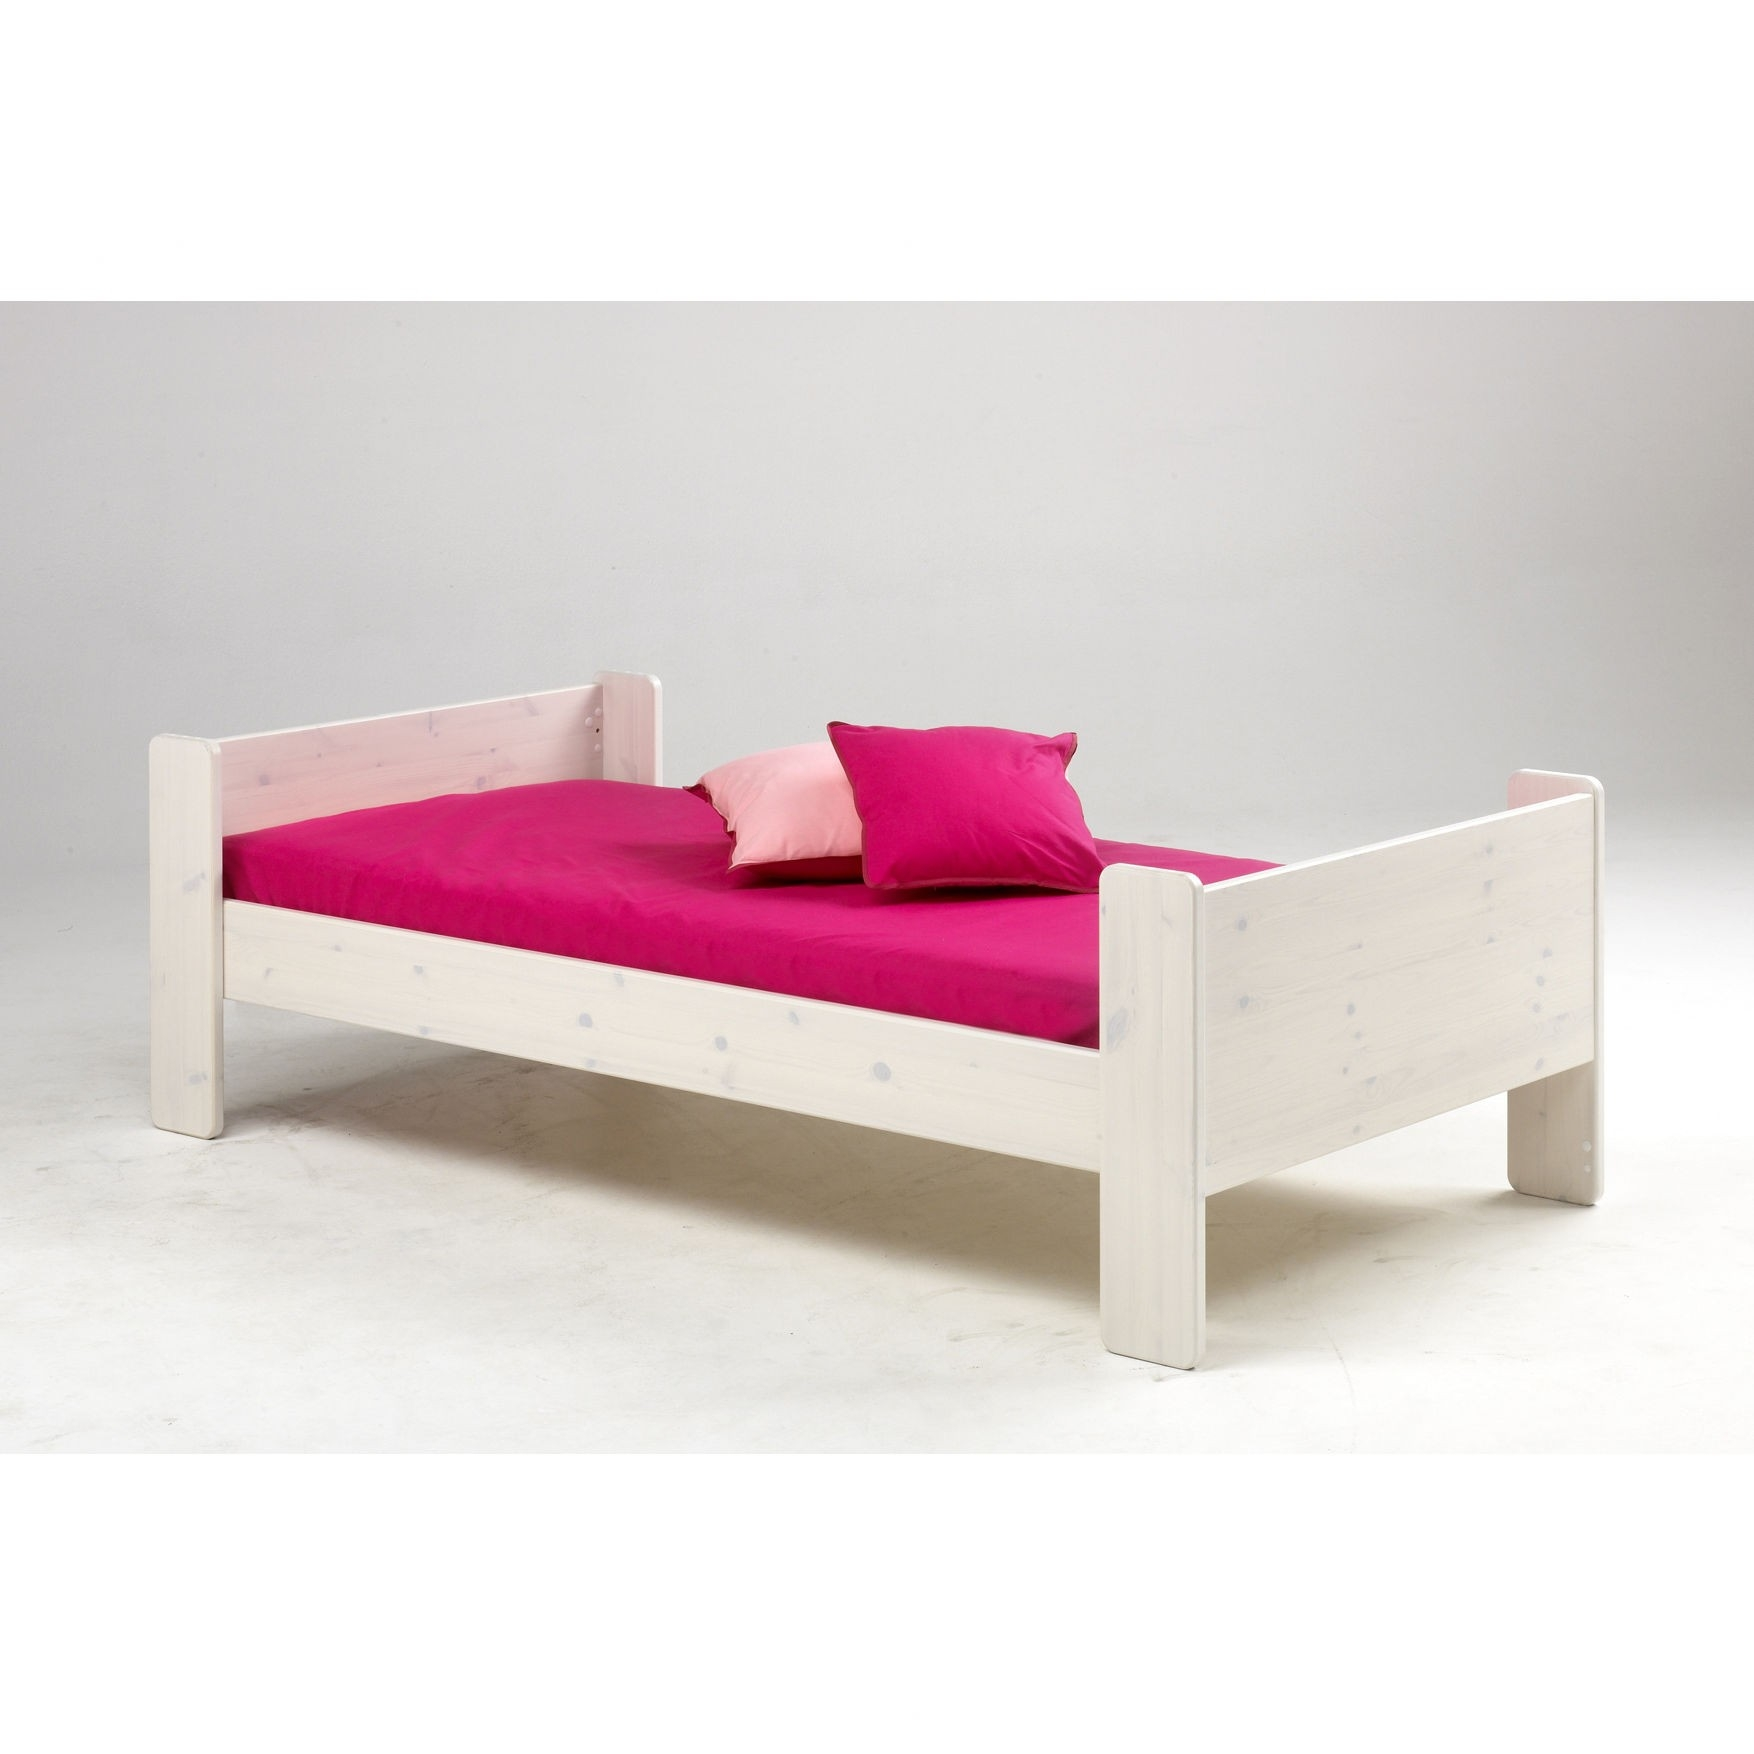 Permalink to Low Single Bed Frame For Toddler